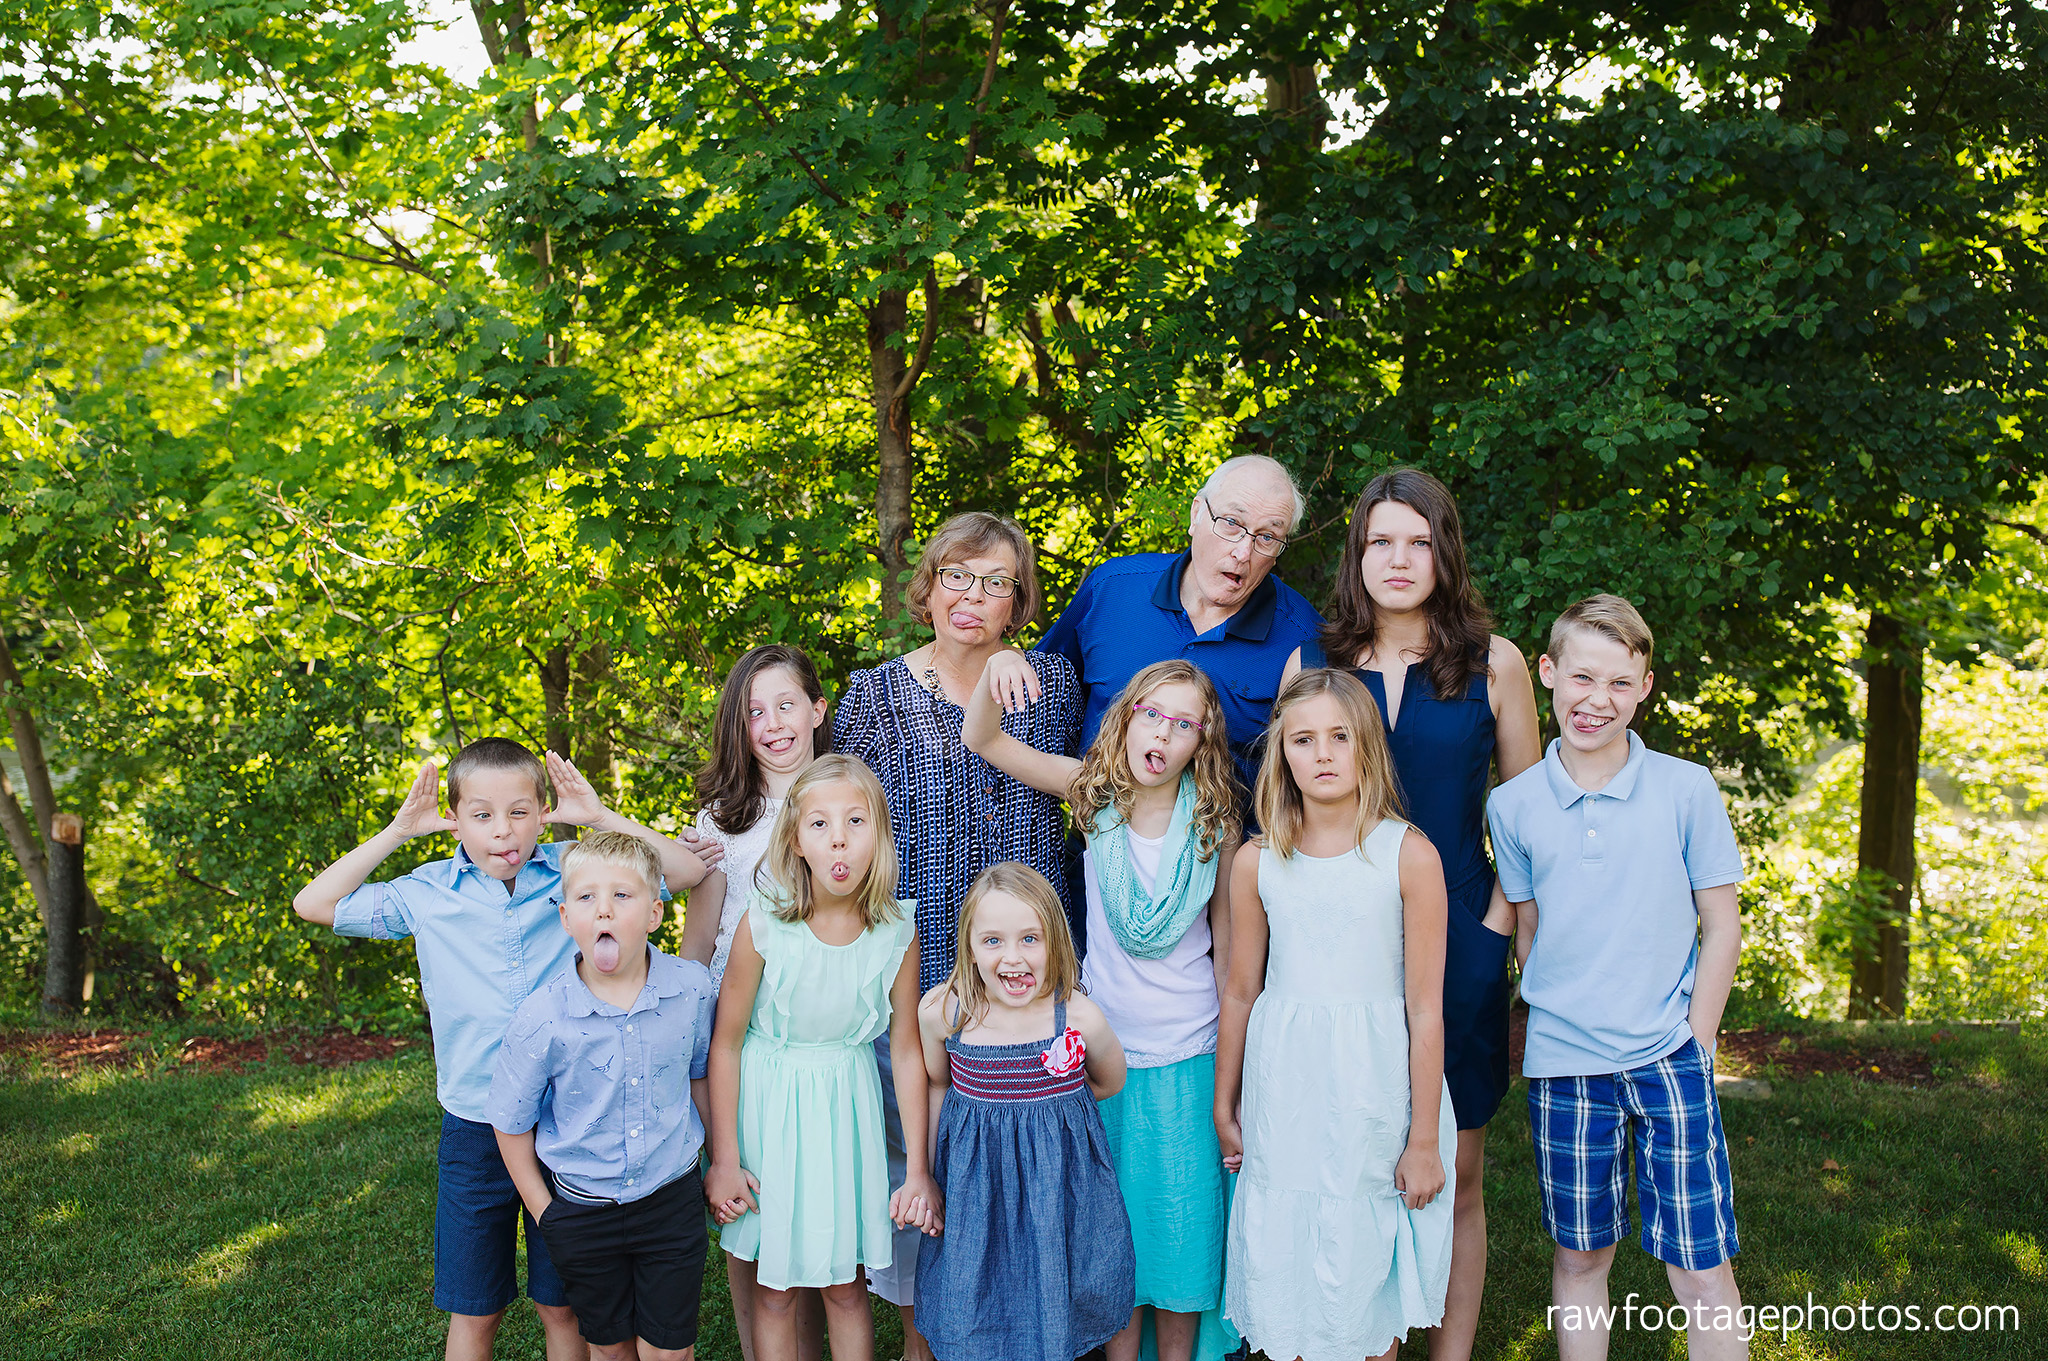 london_ontario_extended_family_backyard_session-raw_footage_photography020.jpg